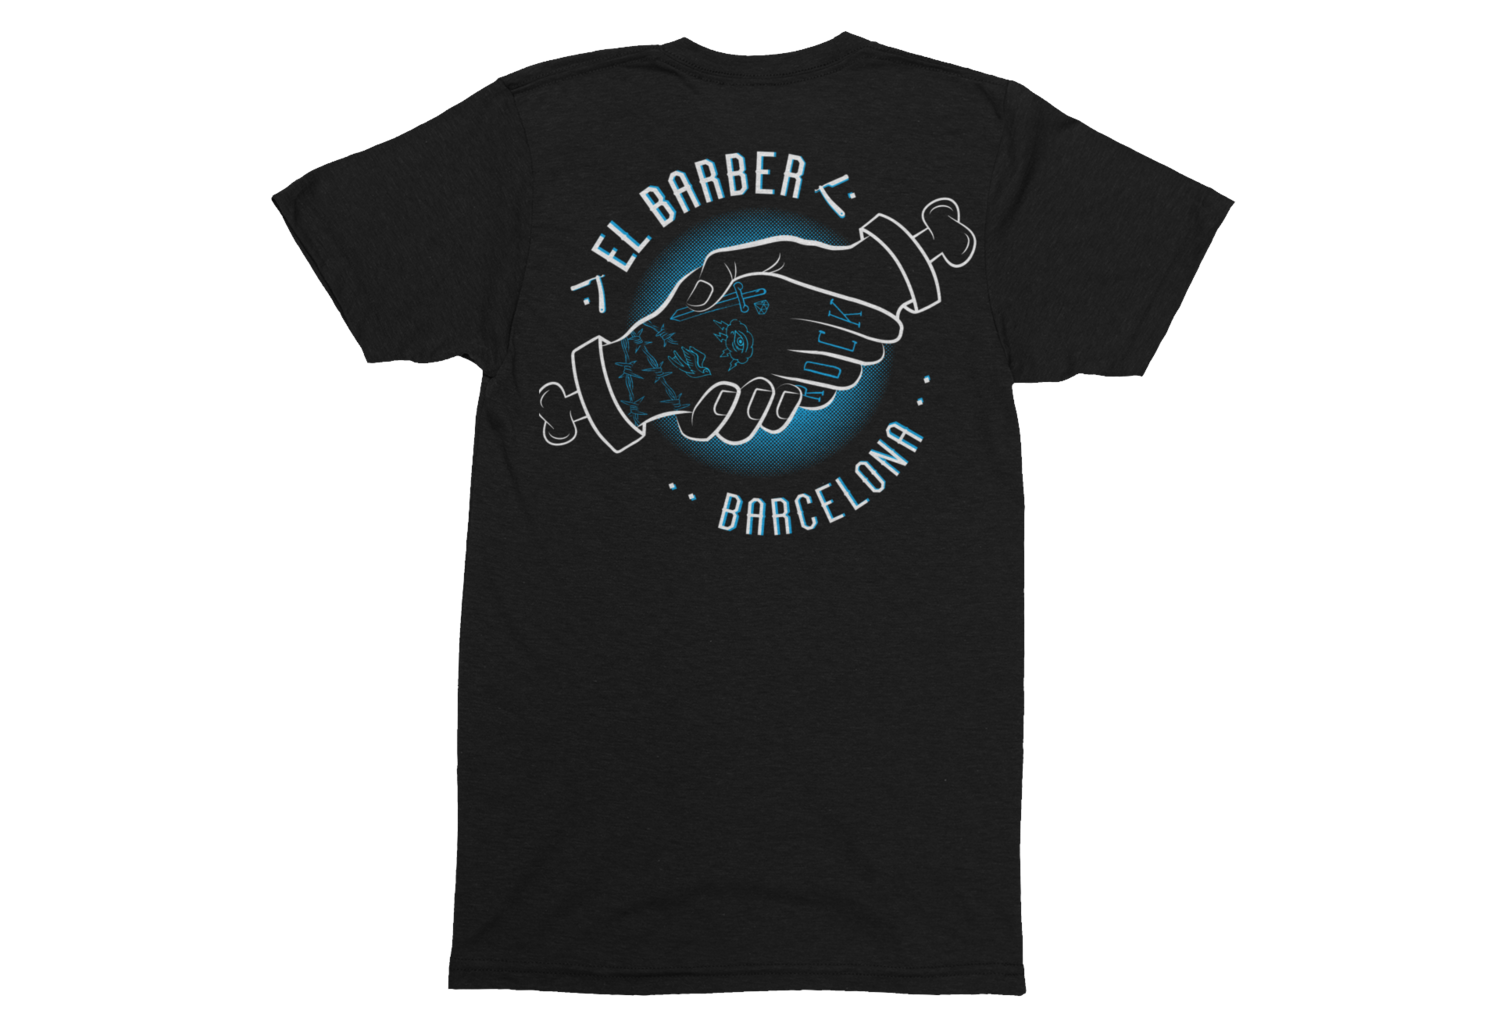 EL BARBER tshirt for MEN